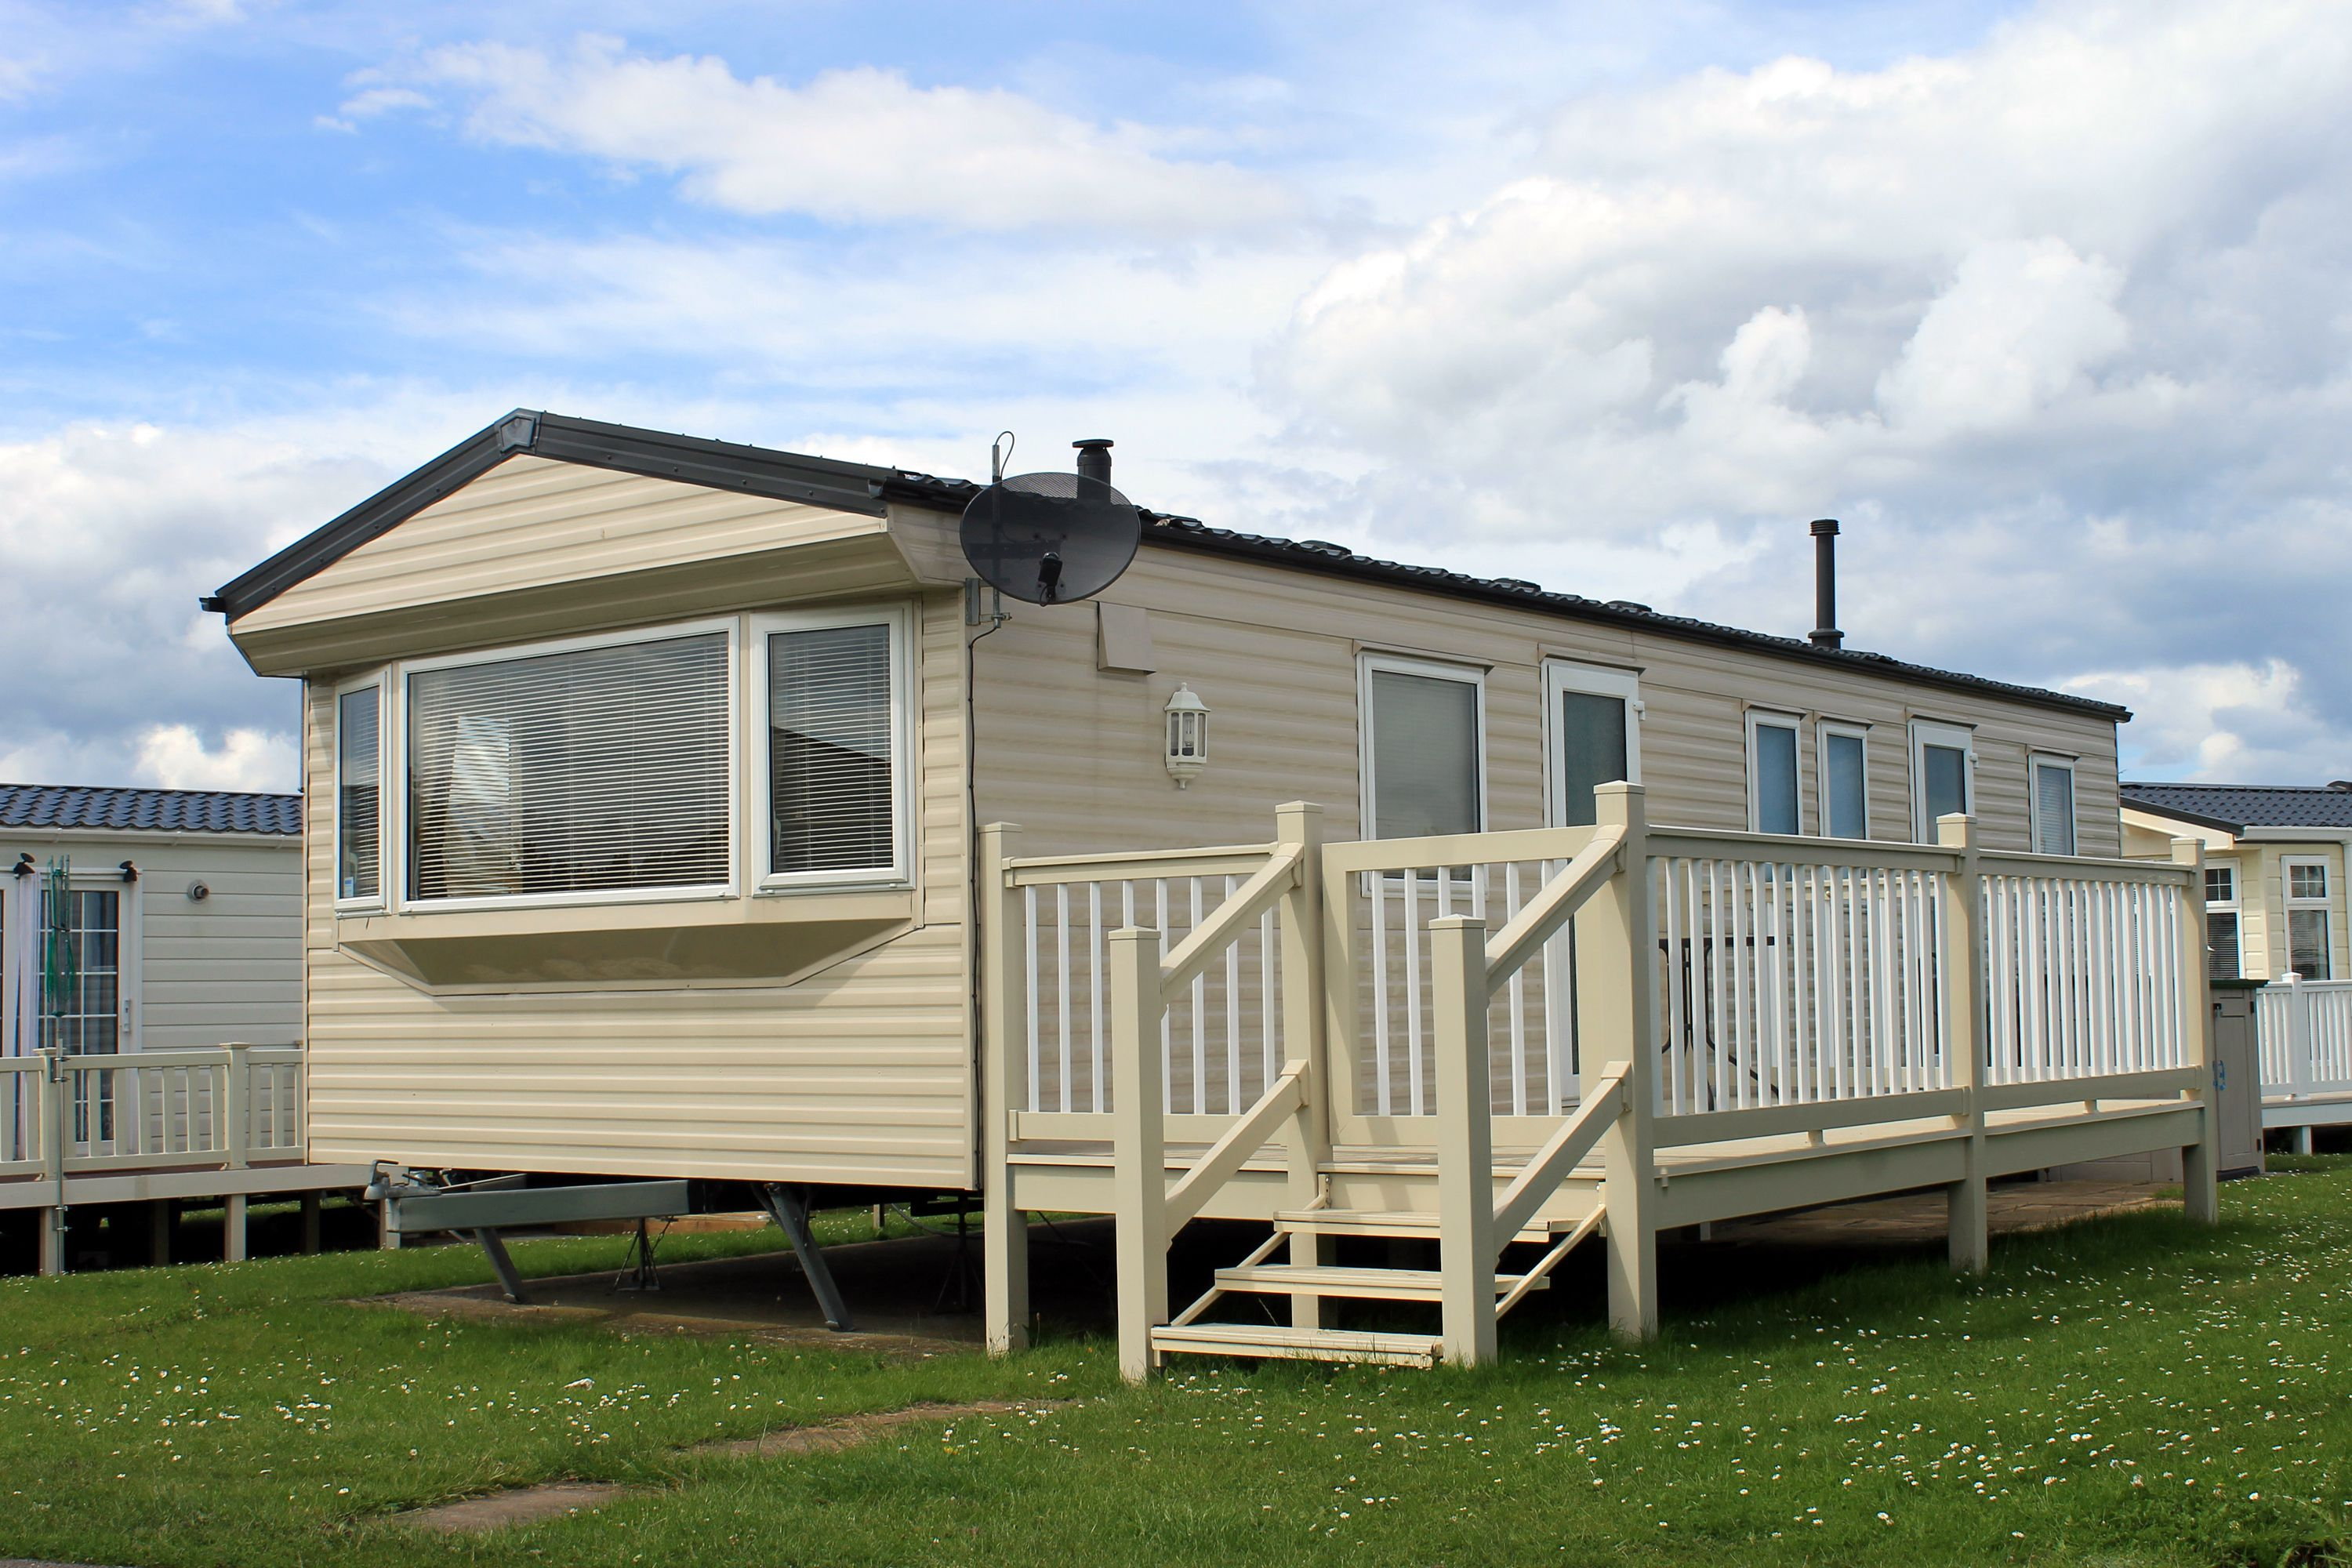 GettyImages-177493968-5adfd401c673350037b7a602 Painting Interior Double Wide Mobile Homes on double wide interior design, colonial homes interior, log cabin homes interior, federalist homes interior, ranch homes interior, double wide landscaping, southern energy mobile homes interior, custom mobile homes interior, split entry homes interior, trailer homes interior, beautiful mobile home kitchen interior, mobile home doors interior, cabin mobile homes interior, contemporary homes interior,